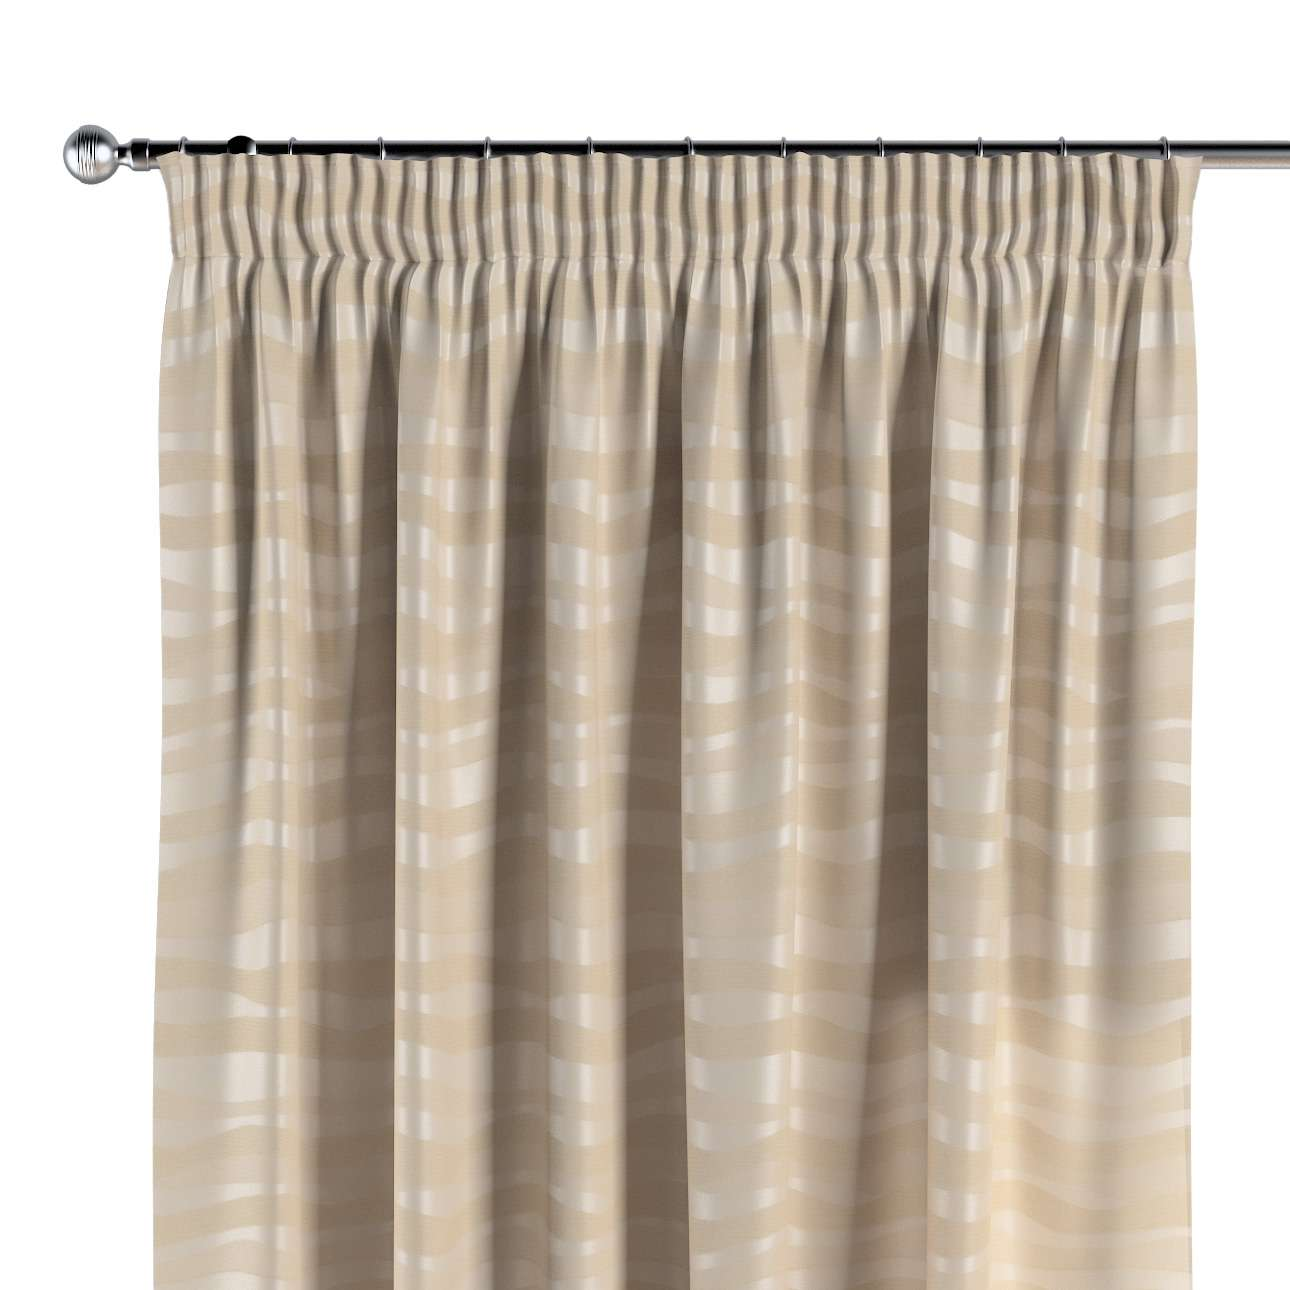 Pencil pleat curtains in collection Damasco, fabric: 141-76